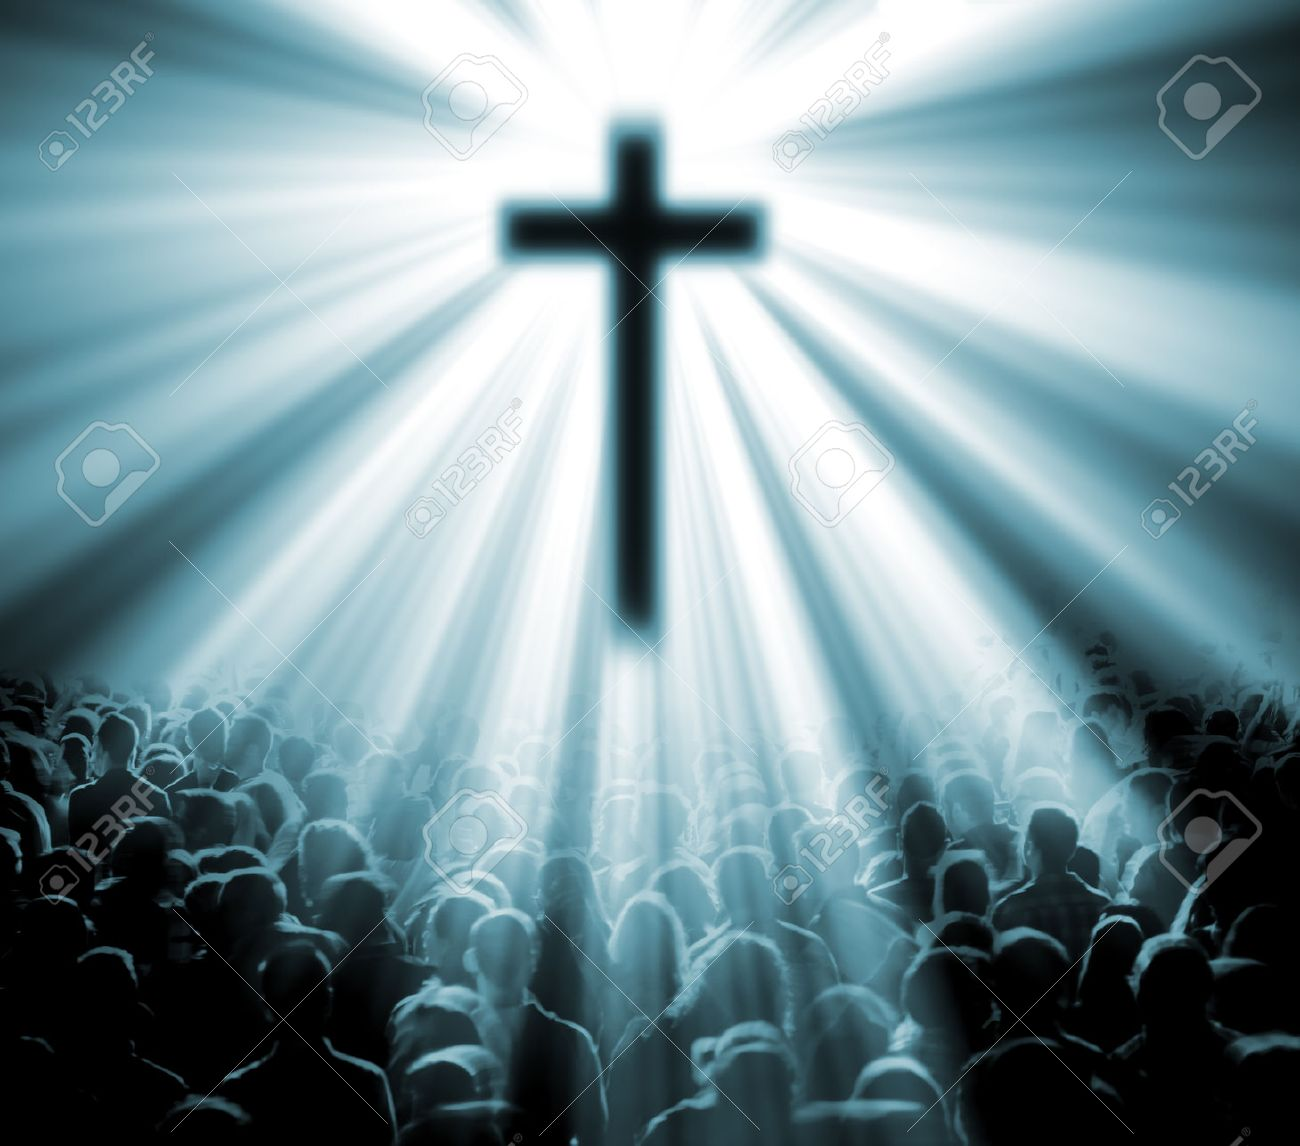 Christian Religion Illustration With Cross Of Christ And - Christian religion